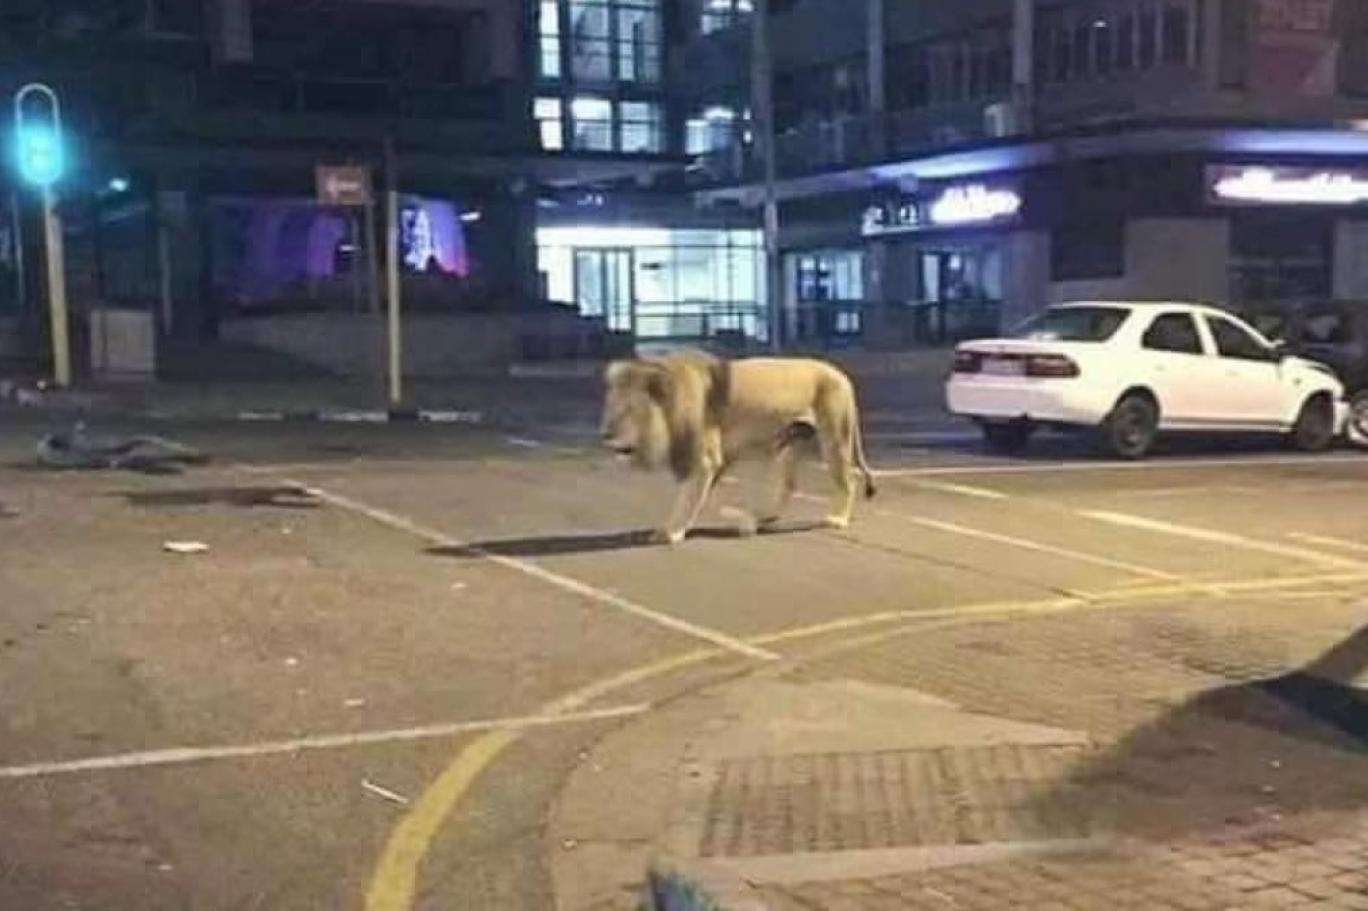 Lion On the Street